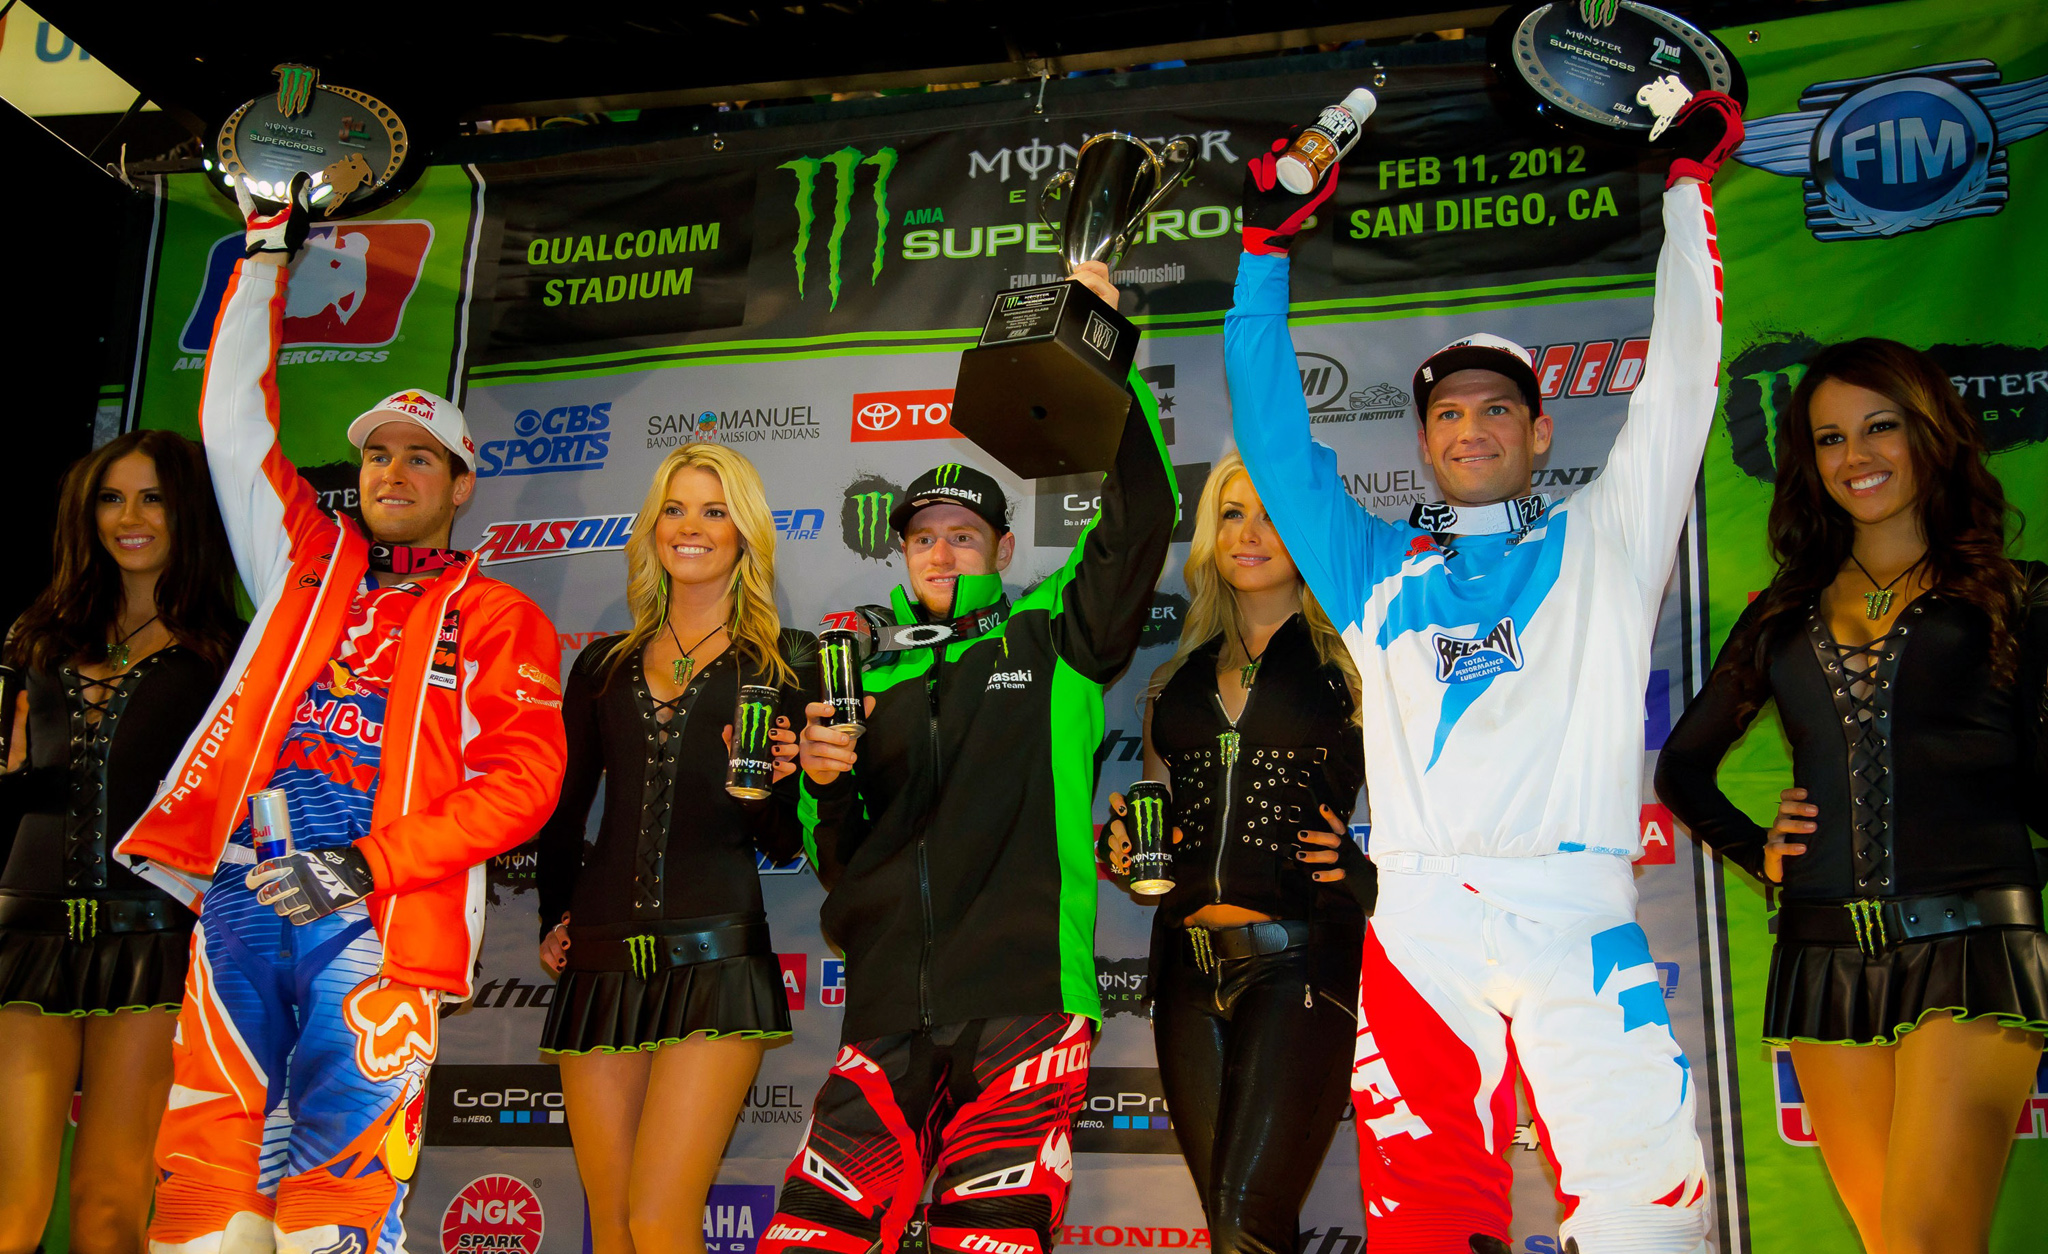 Ryan Dungey, Ryan Villopoto, Chad Reed